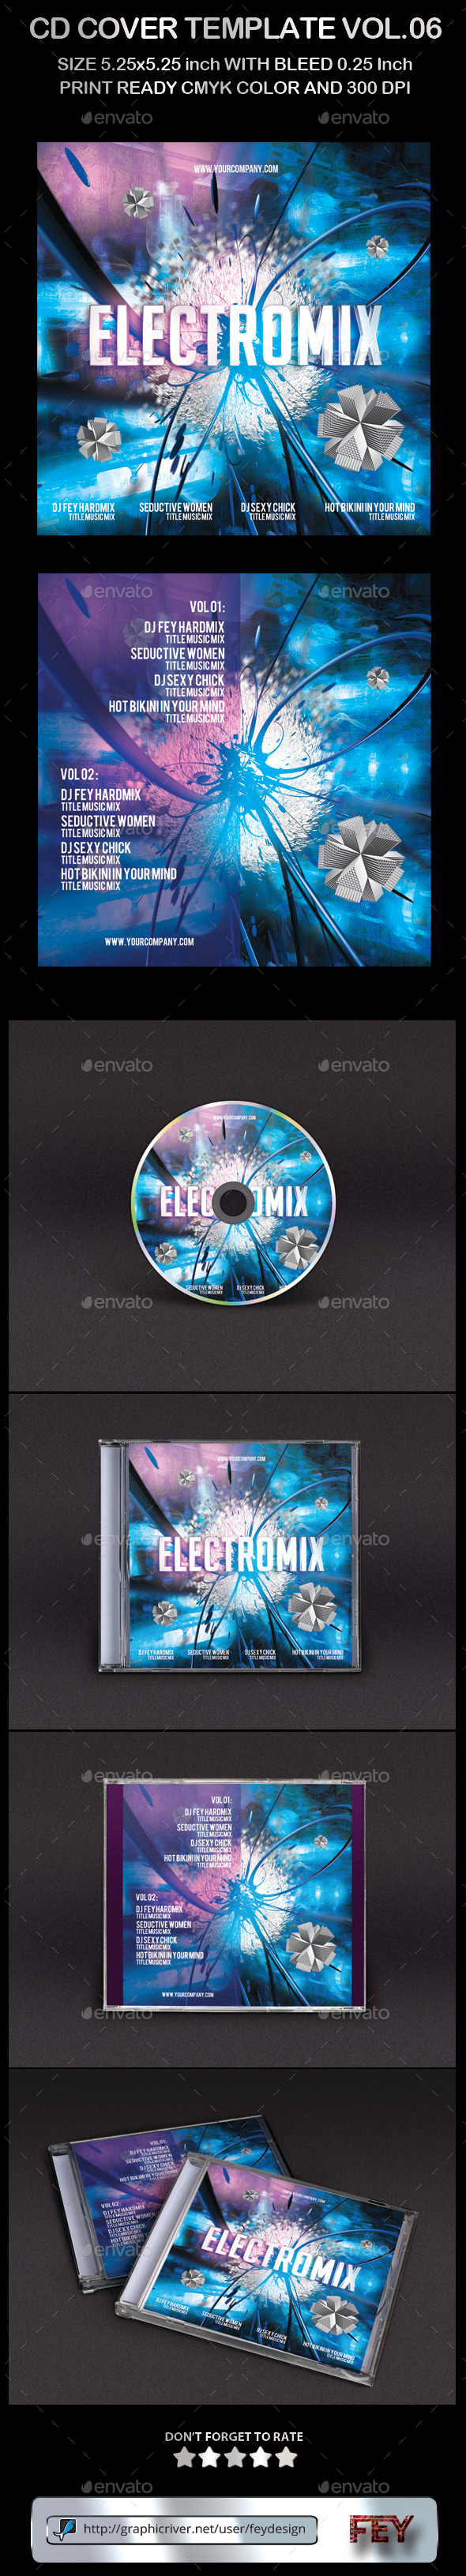 CD Cover Template Vol.06 - CD & DVD Artwork Print Templates